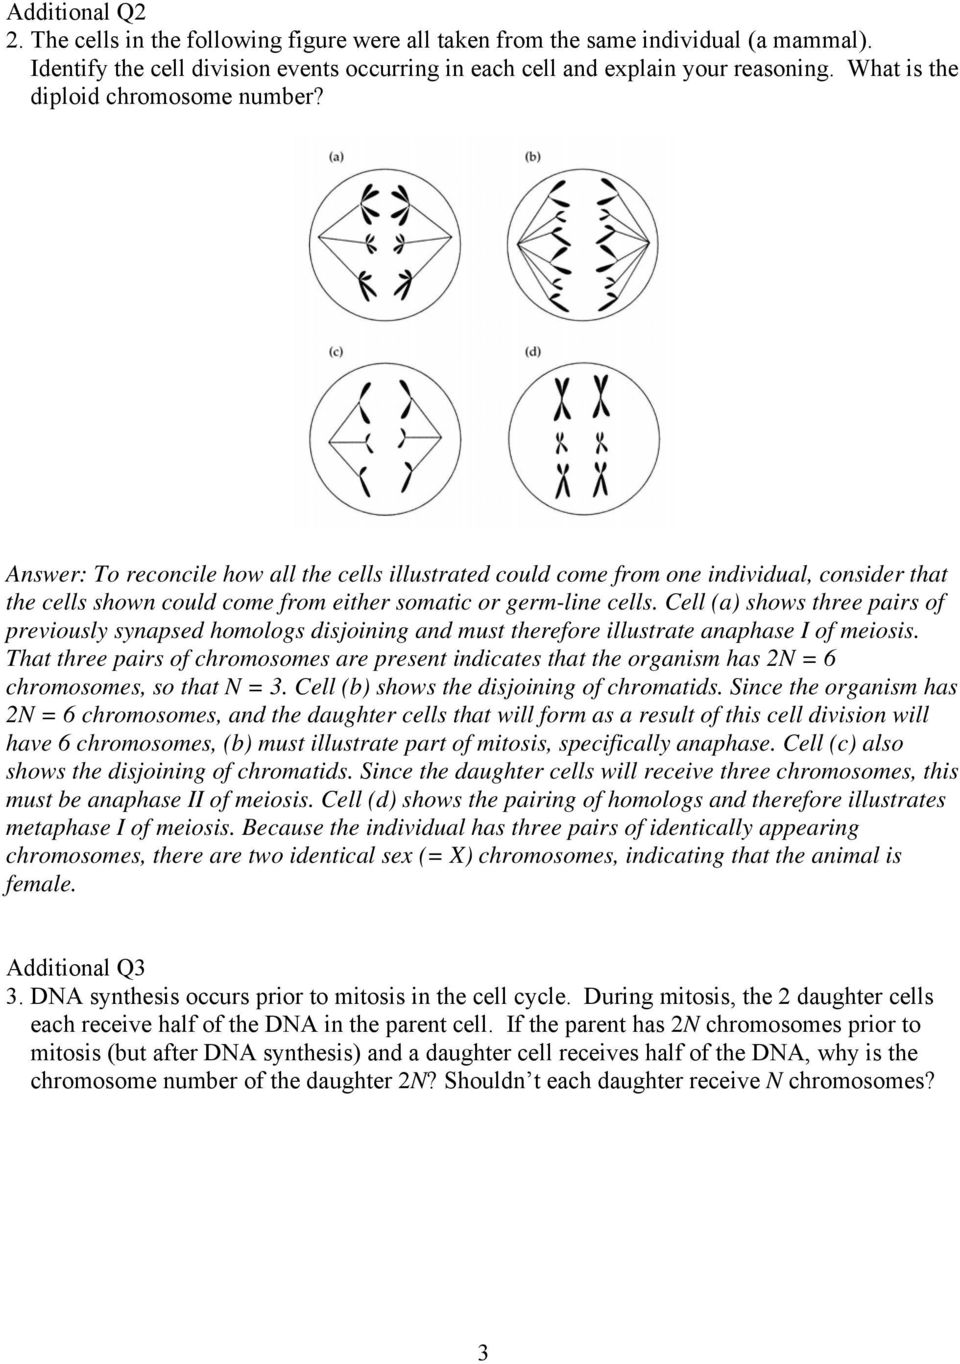 BioSci 2200 General Genetics Problem Set 1 Answer Key Introduction – Mitosis Versus Meiosis Worksheet Answer Key